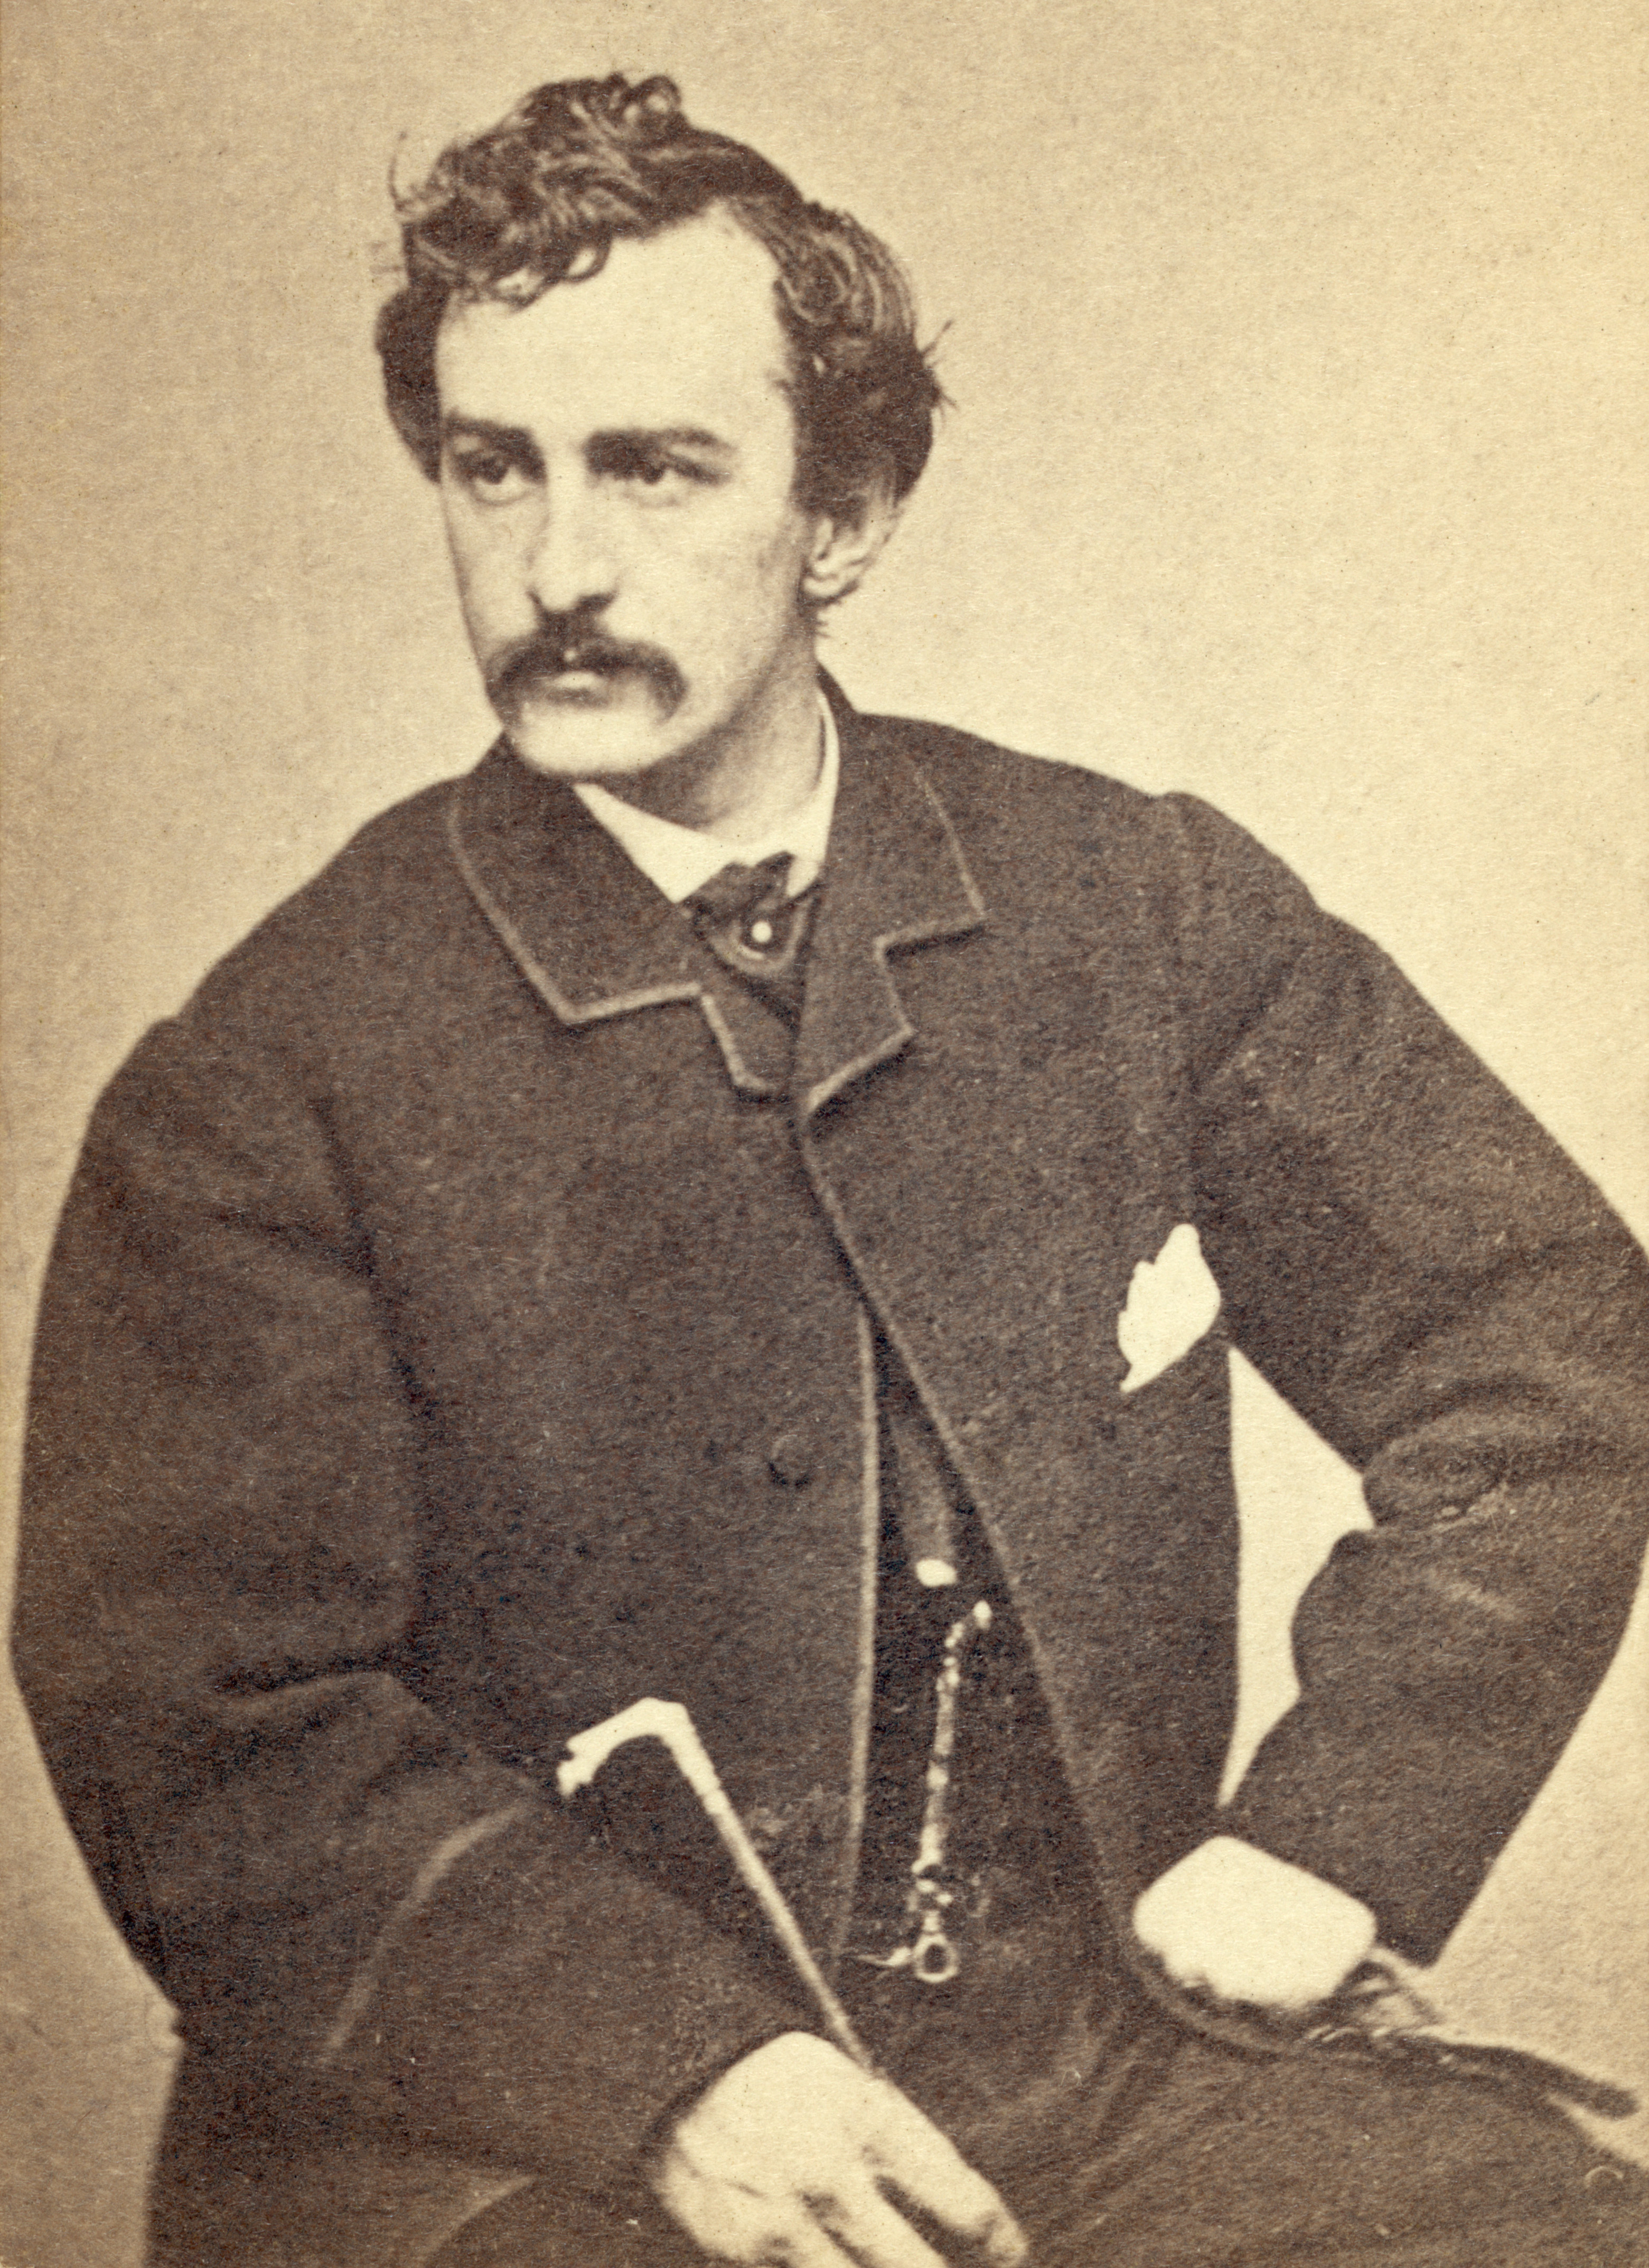 Portrait of John Wilkes Booth, circa 1865.